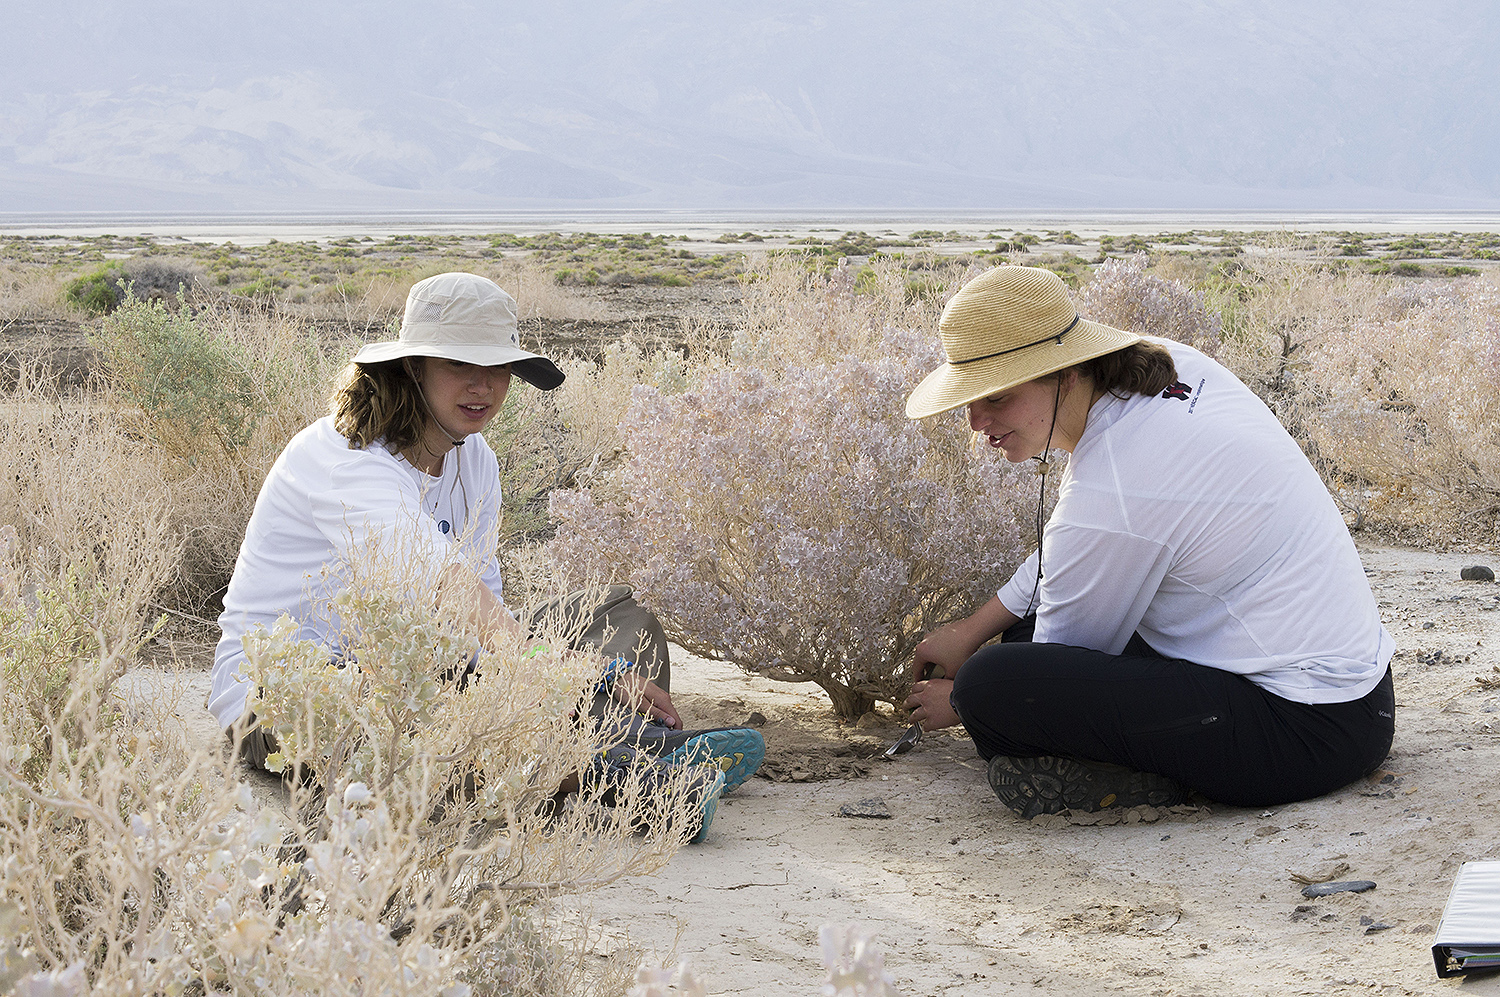 Nicole DelGaudio '18 and Bella Wiener '19 sample the rhizospheres of desert holly at about 200 feet below sea level. The salt pan of Death Valley is in the distance.